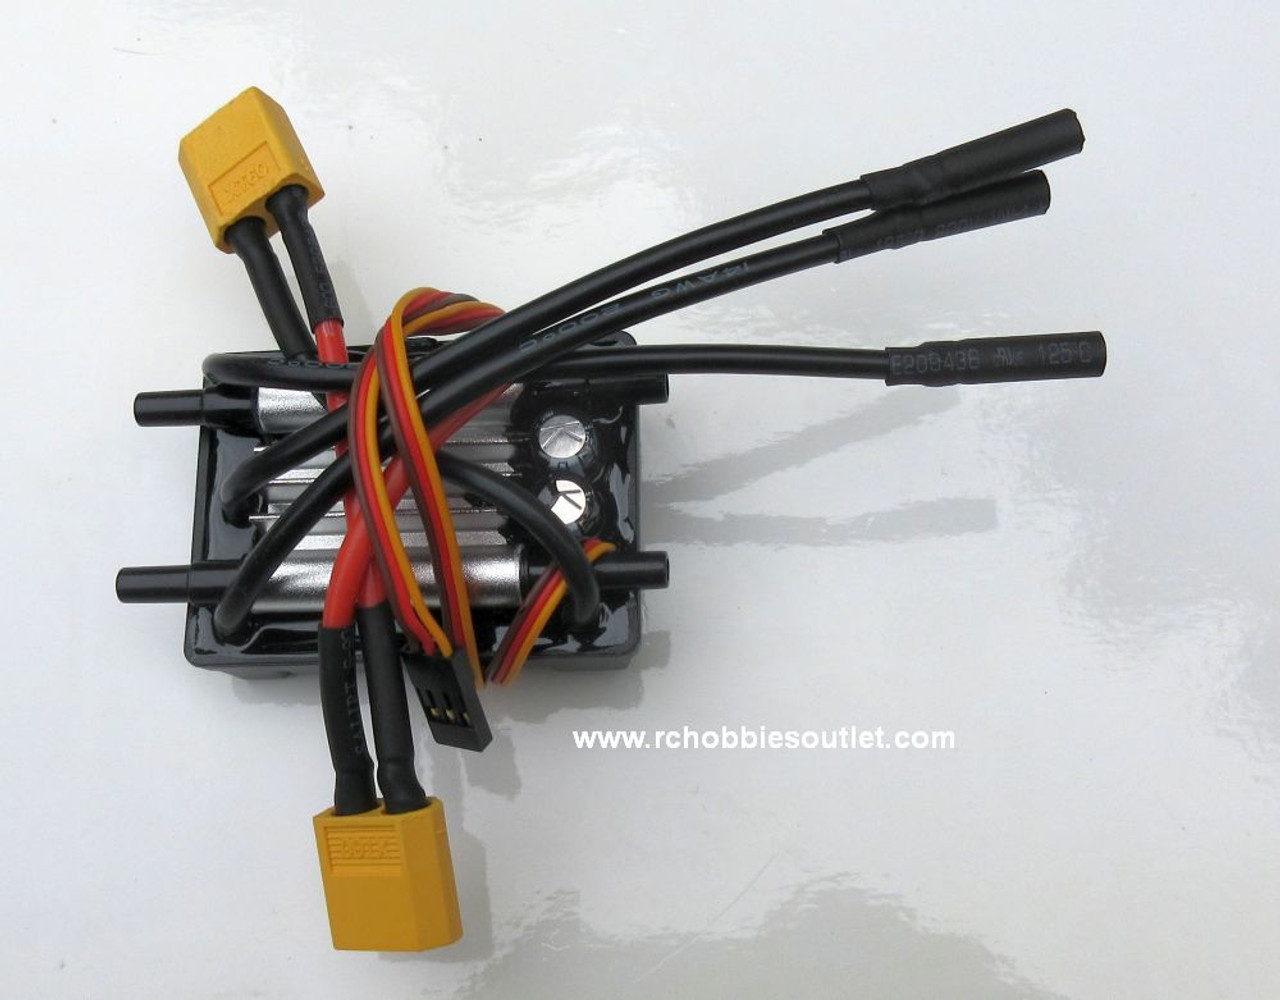 830122 60A Water Cooled Brushless ESC w/ Two XT60 Connectors for Big Storm RC Boat Joysway